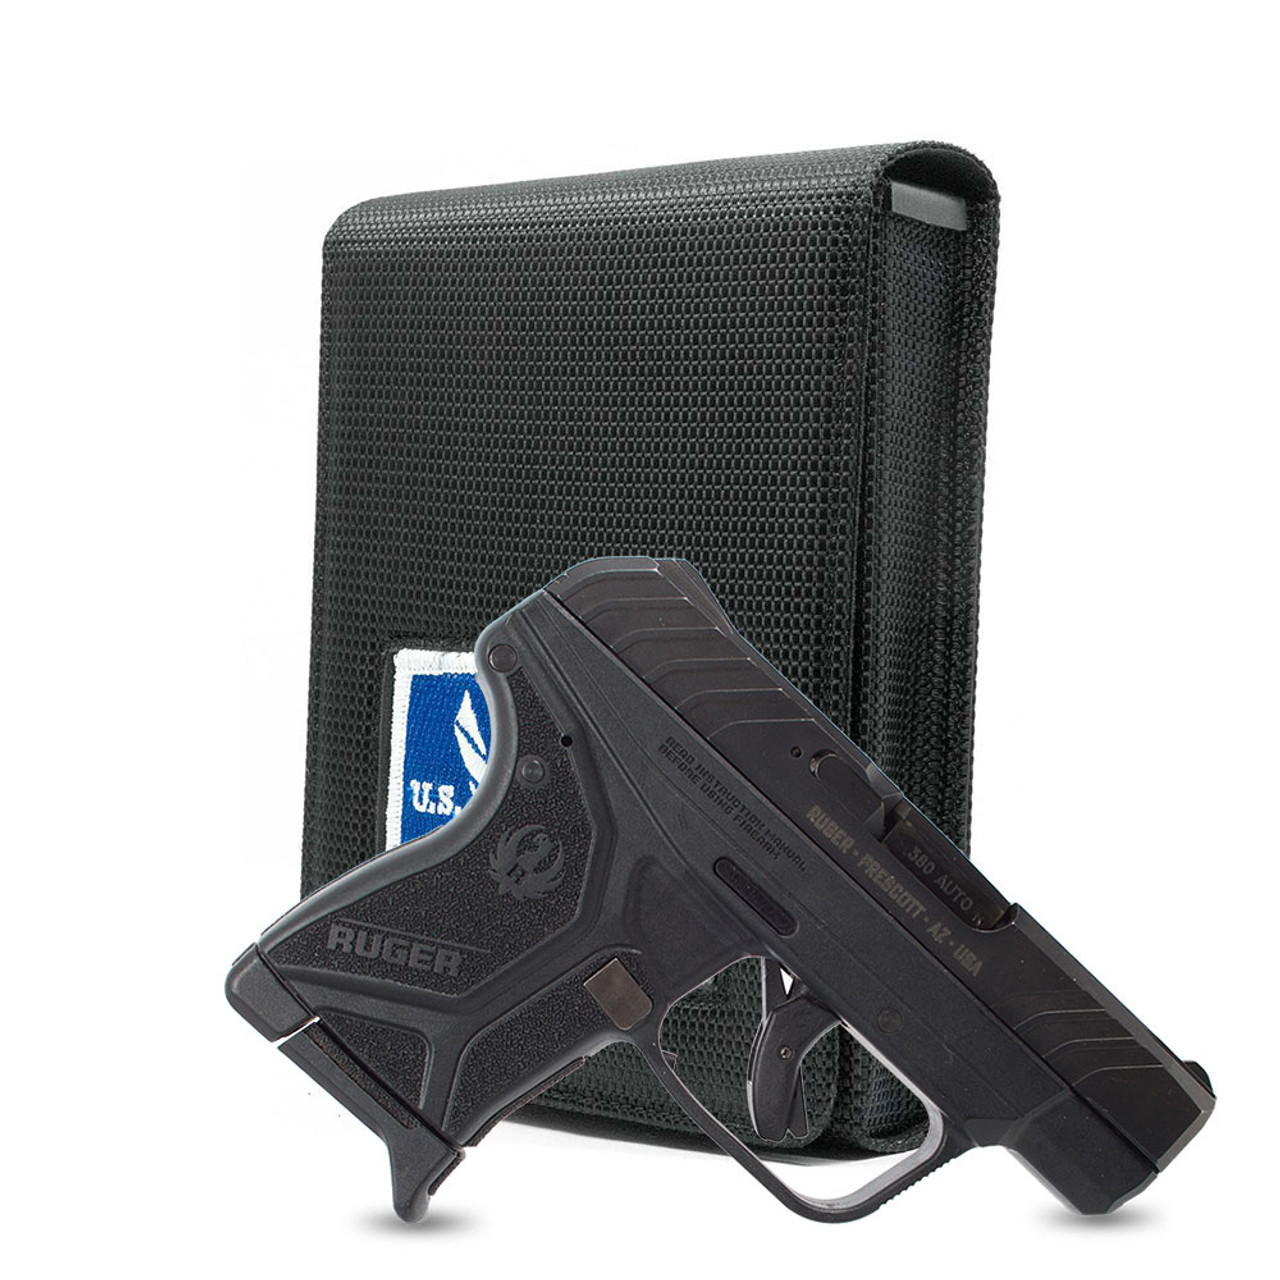 Ruger LCP II Air Force Tactical Patch Holster